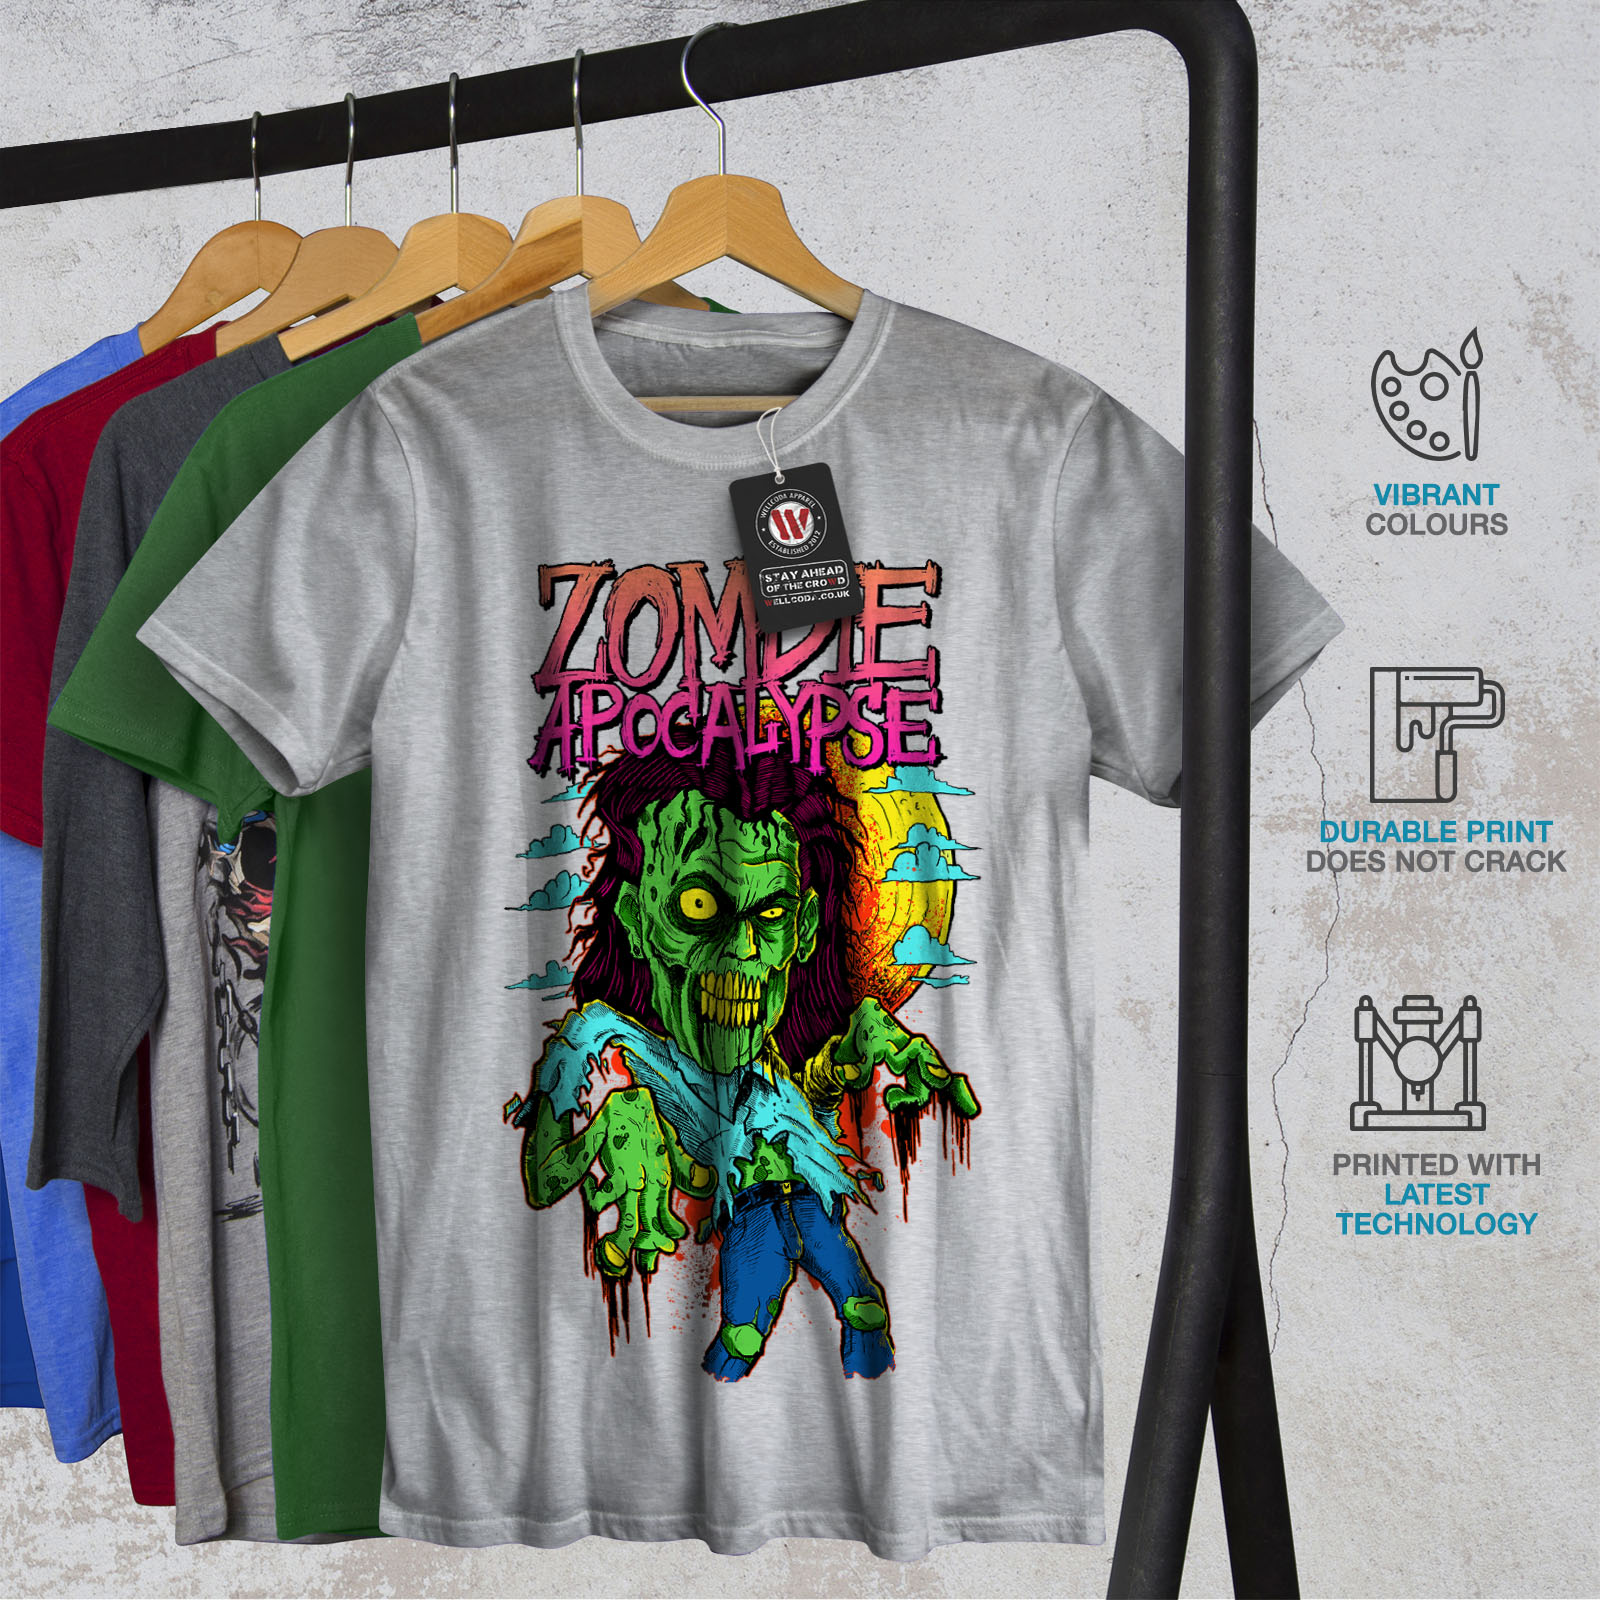 Wellcoda-Zombie-Apocalypse-Horror-Mens-T-shirt-Graphic-Design-Printed-Tee thumbnail 18